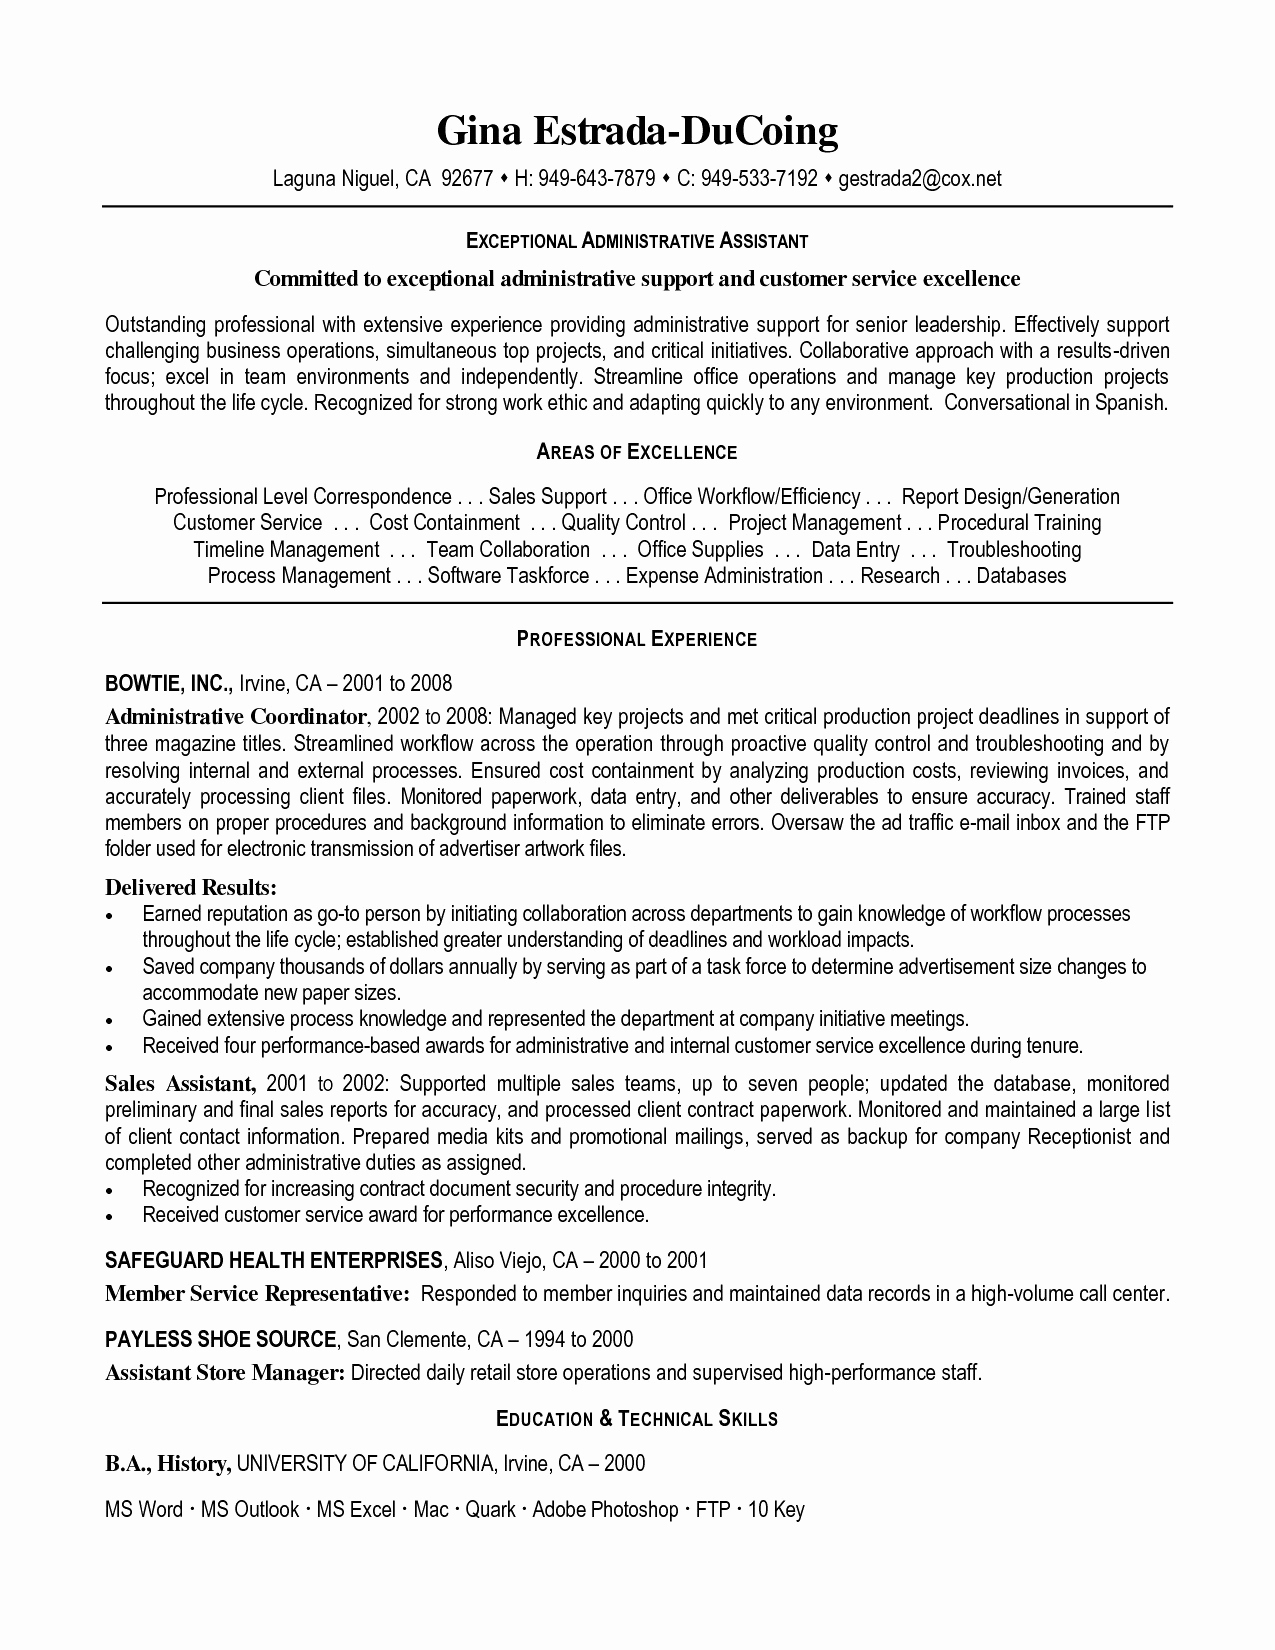 Executive assistant Resume Template Word - Celebrity Personal assistant Resume Elegant Resume Puter Skills